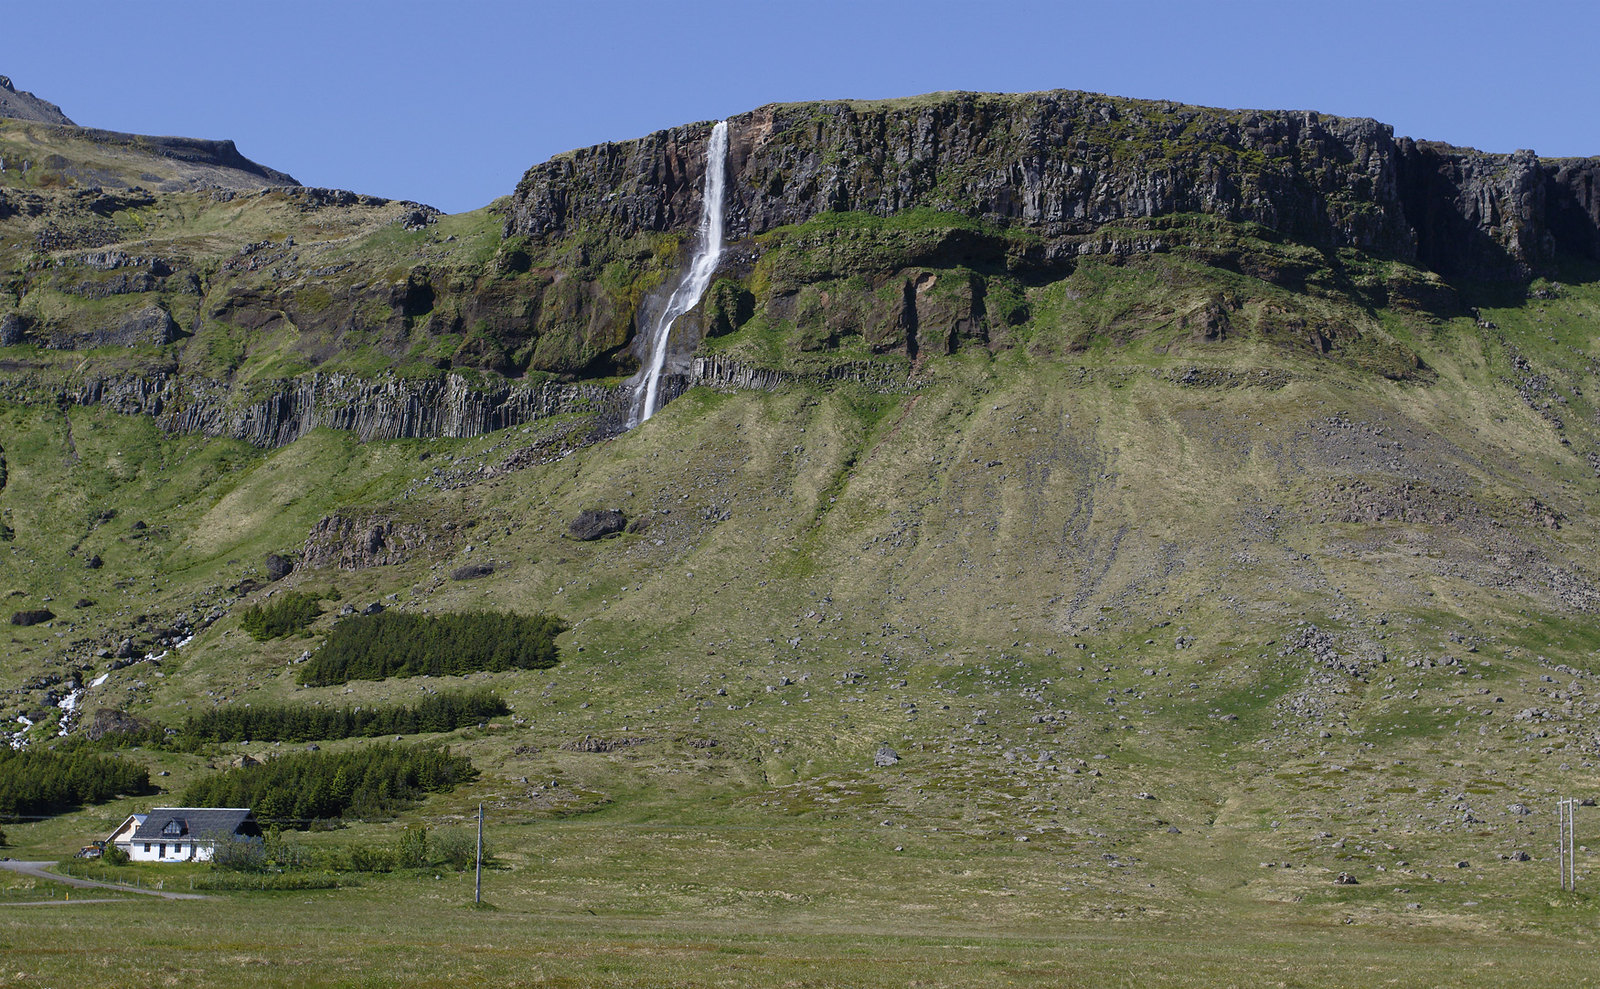 Volcanic cliffs and waterfalls everywhere